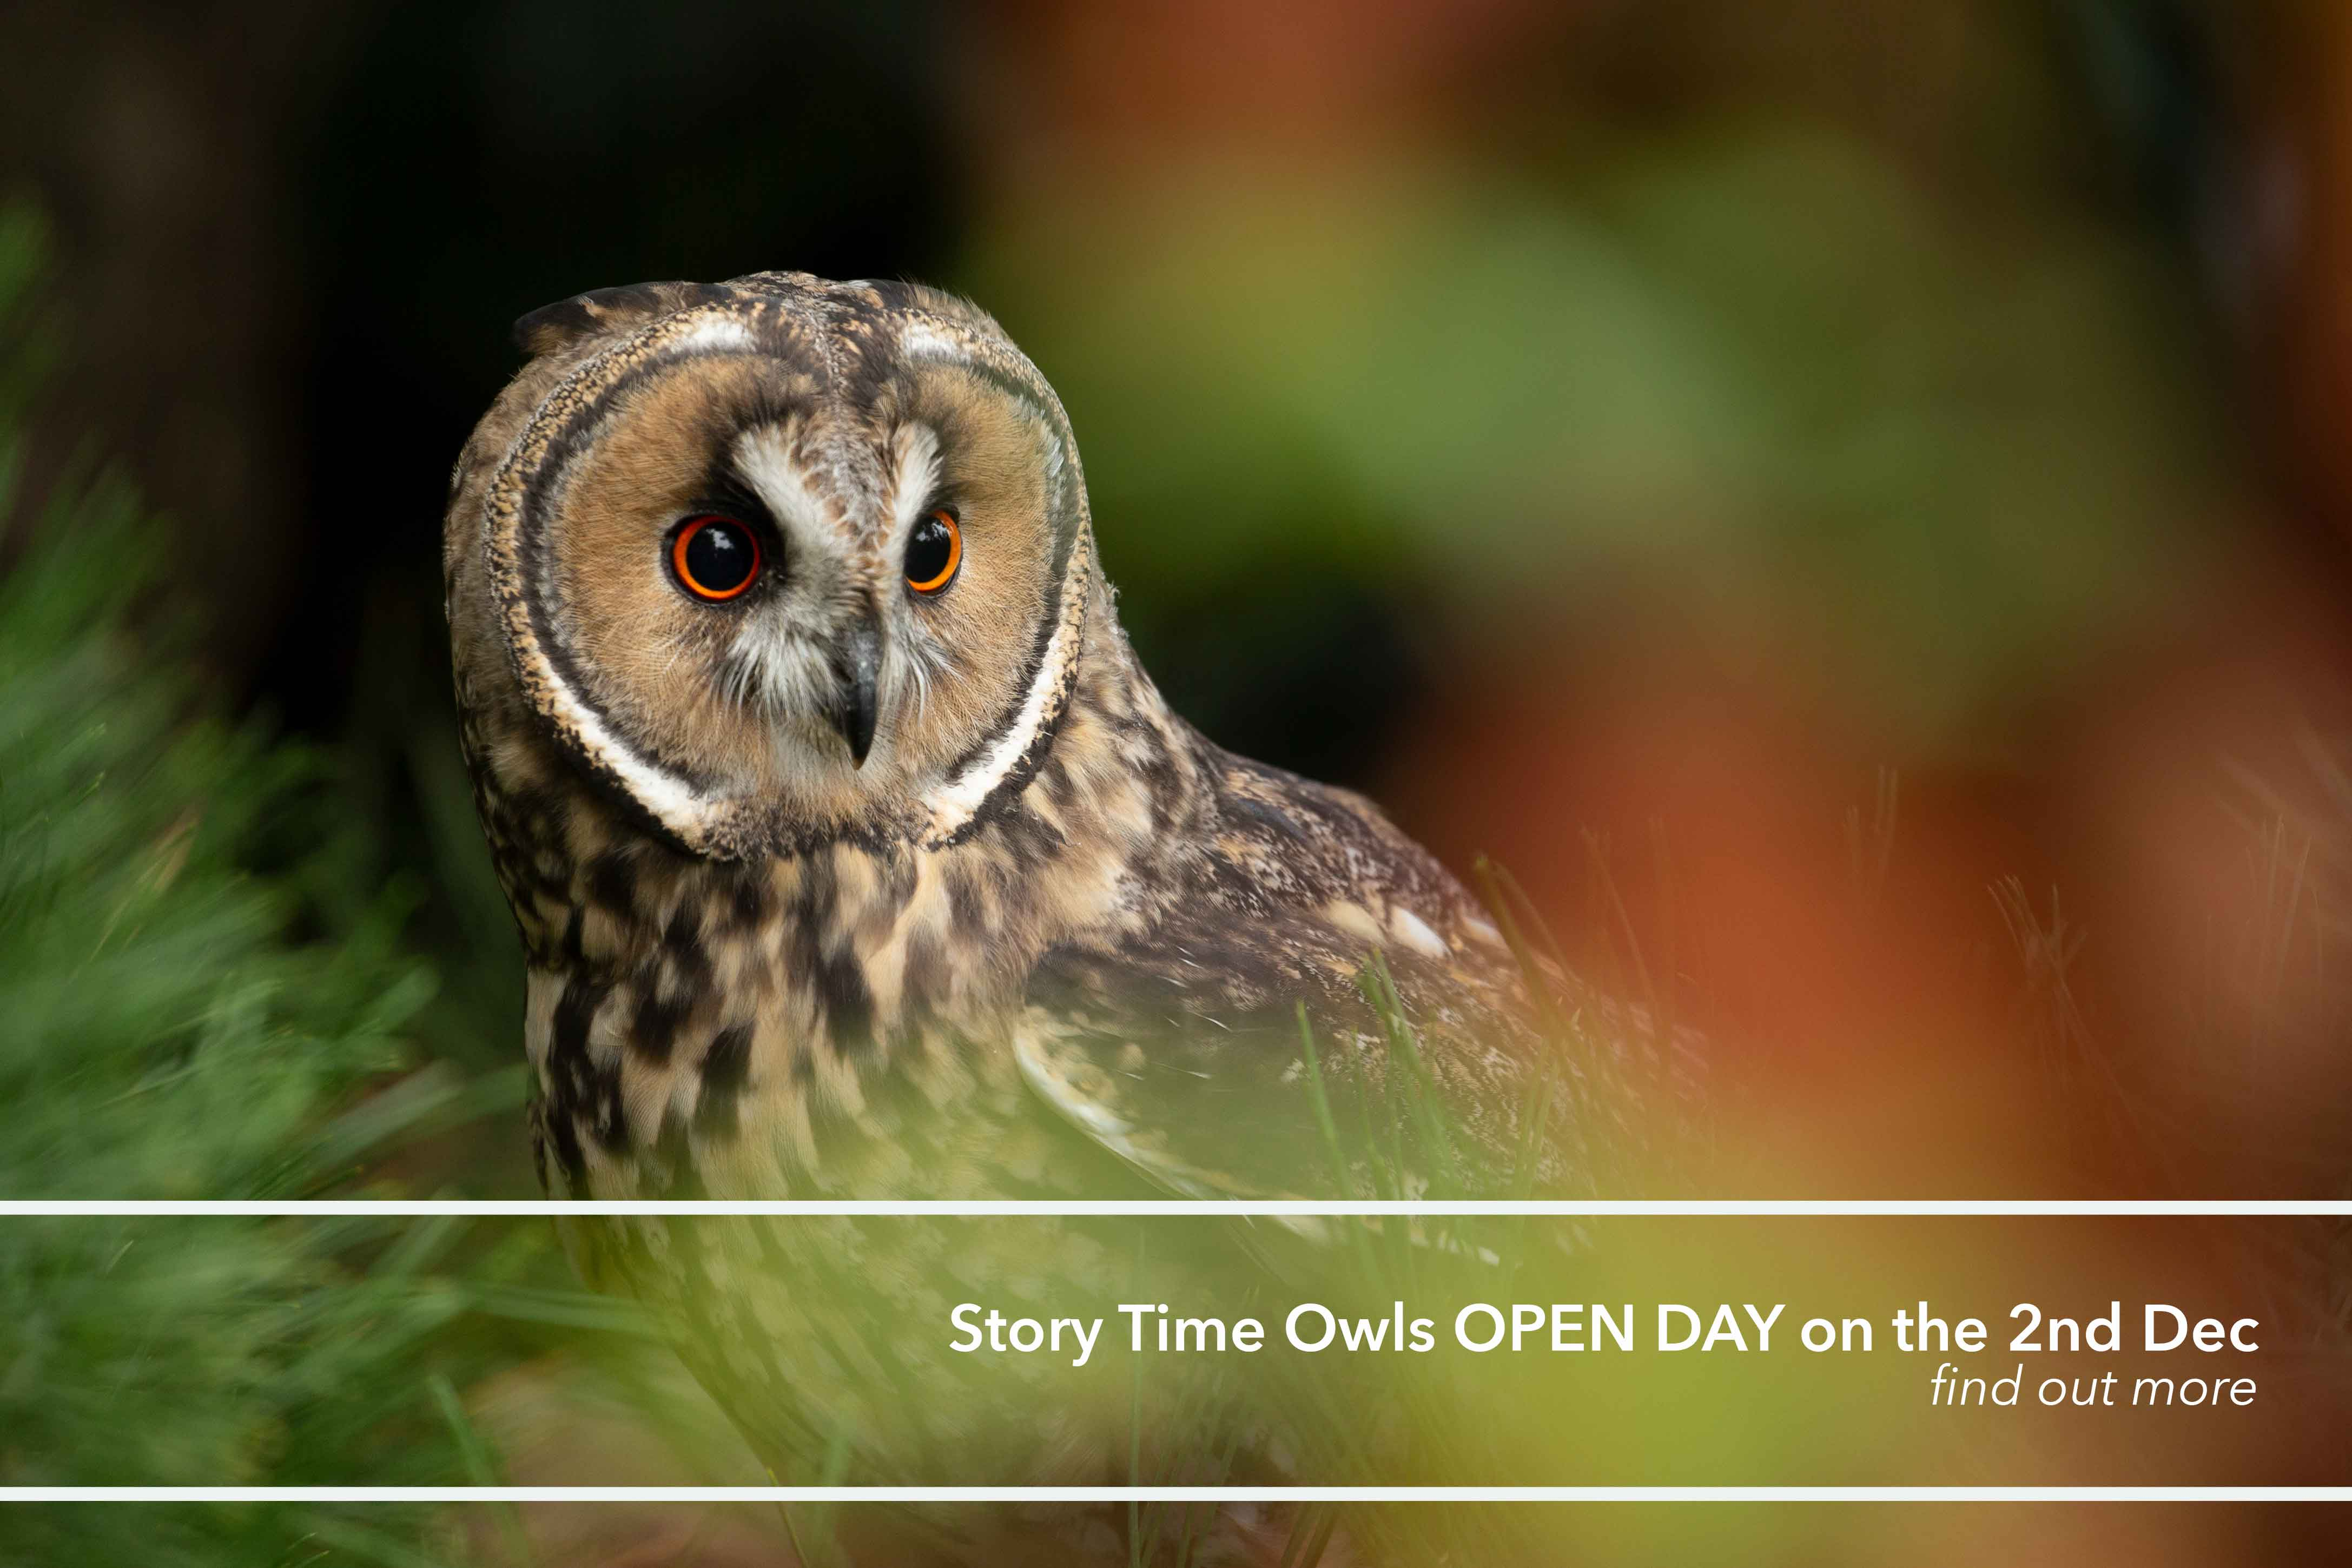 Owl open day